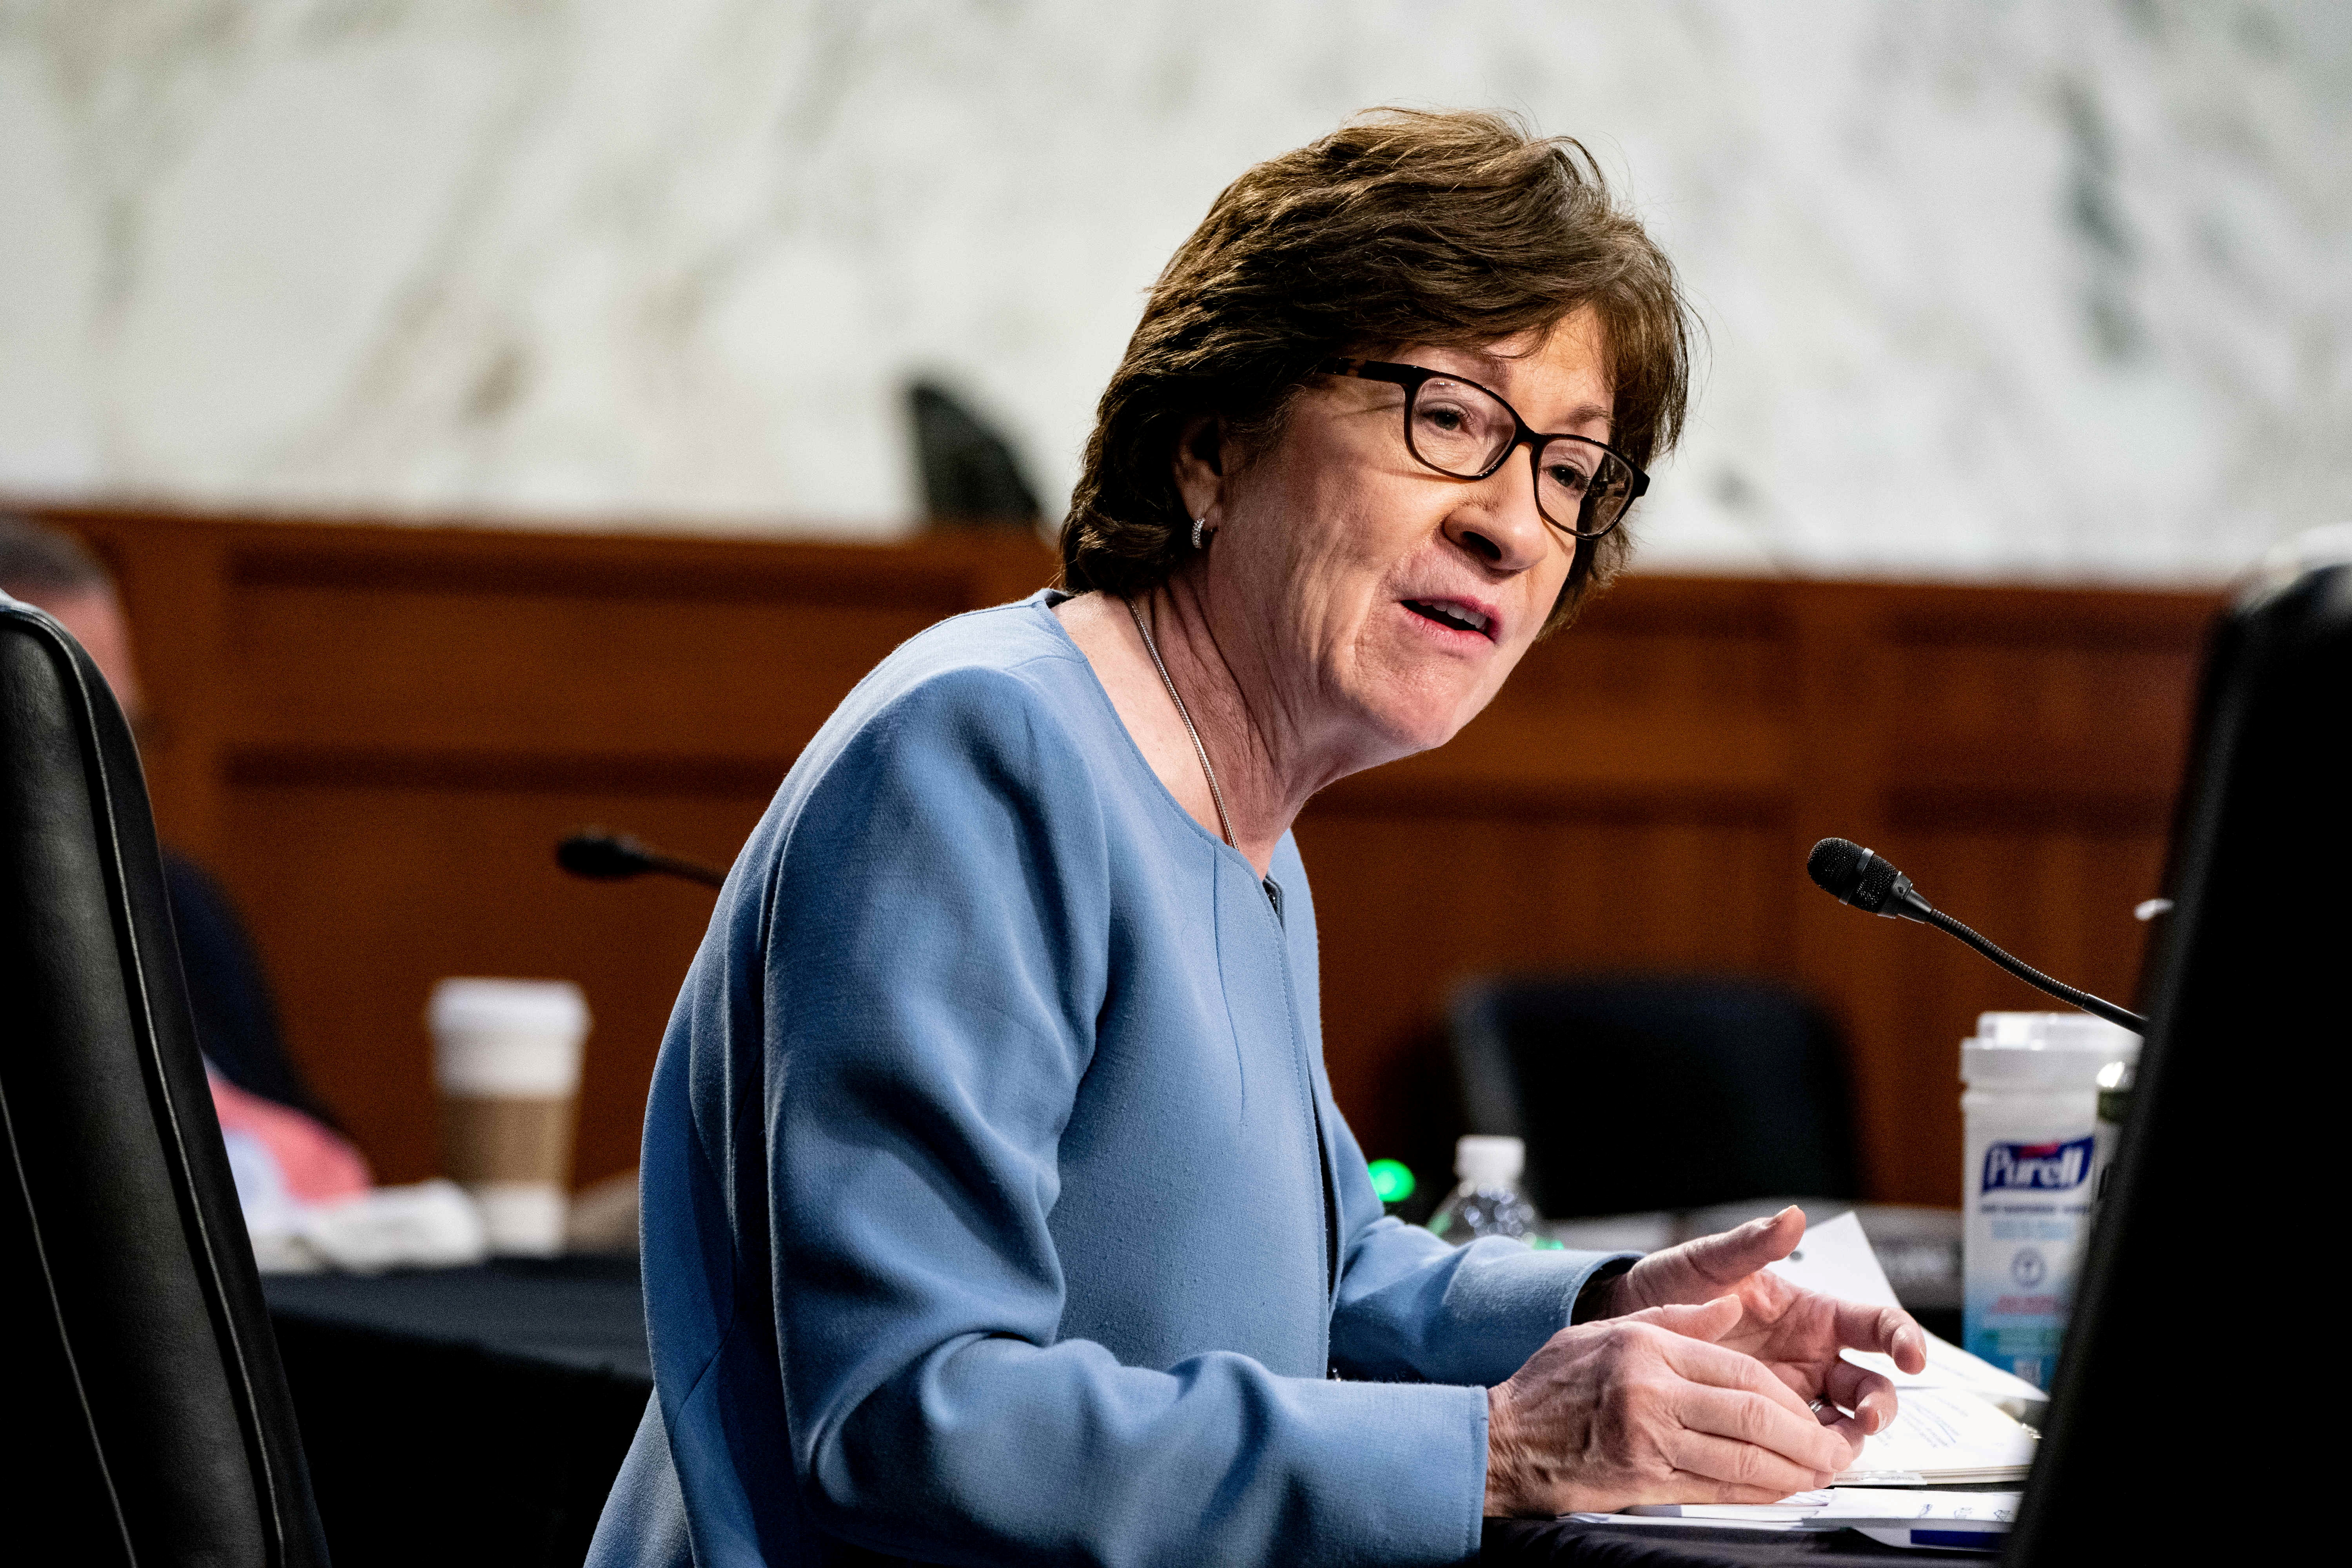 Senator Susan Collins, R-Maine, speaks during at a U.S. Senate Health, Education, Labor, and Pensions Committee hearing to examine the COVID-19 response, focusing on an update from federal officials, on Capitol Hill in Washington, U.S., March 18, 2021. Anna Moneymaker/Pool via REUTERS/File Photo